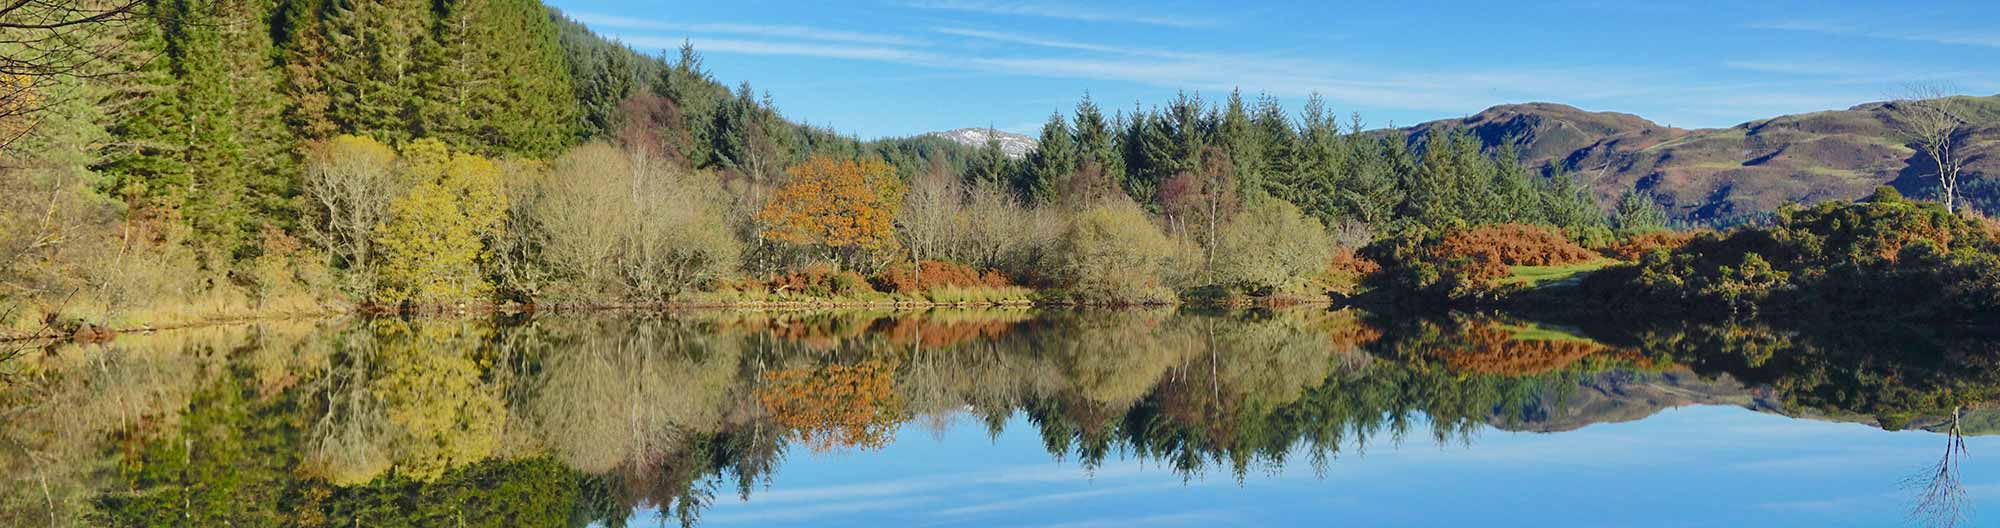 Llyn Tan-y-Graig in Autumn